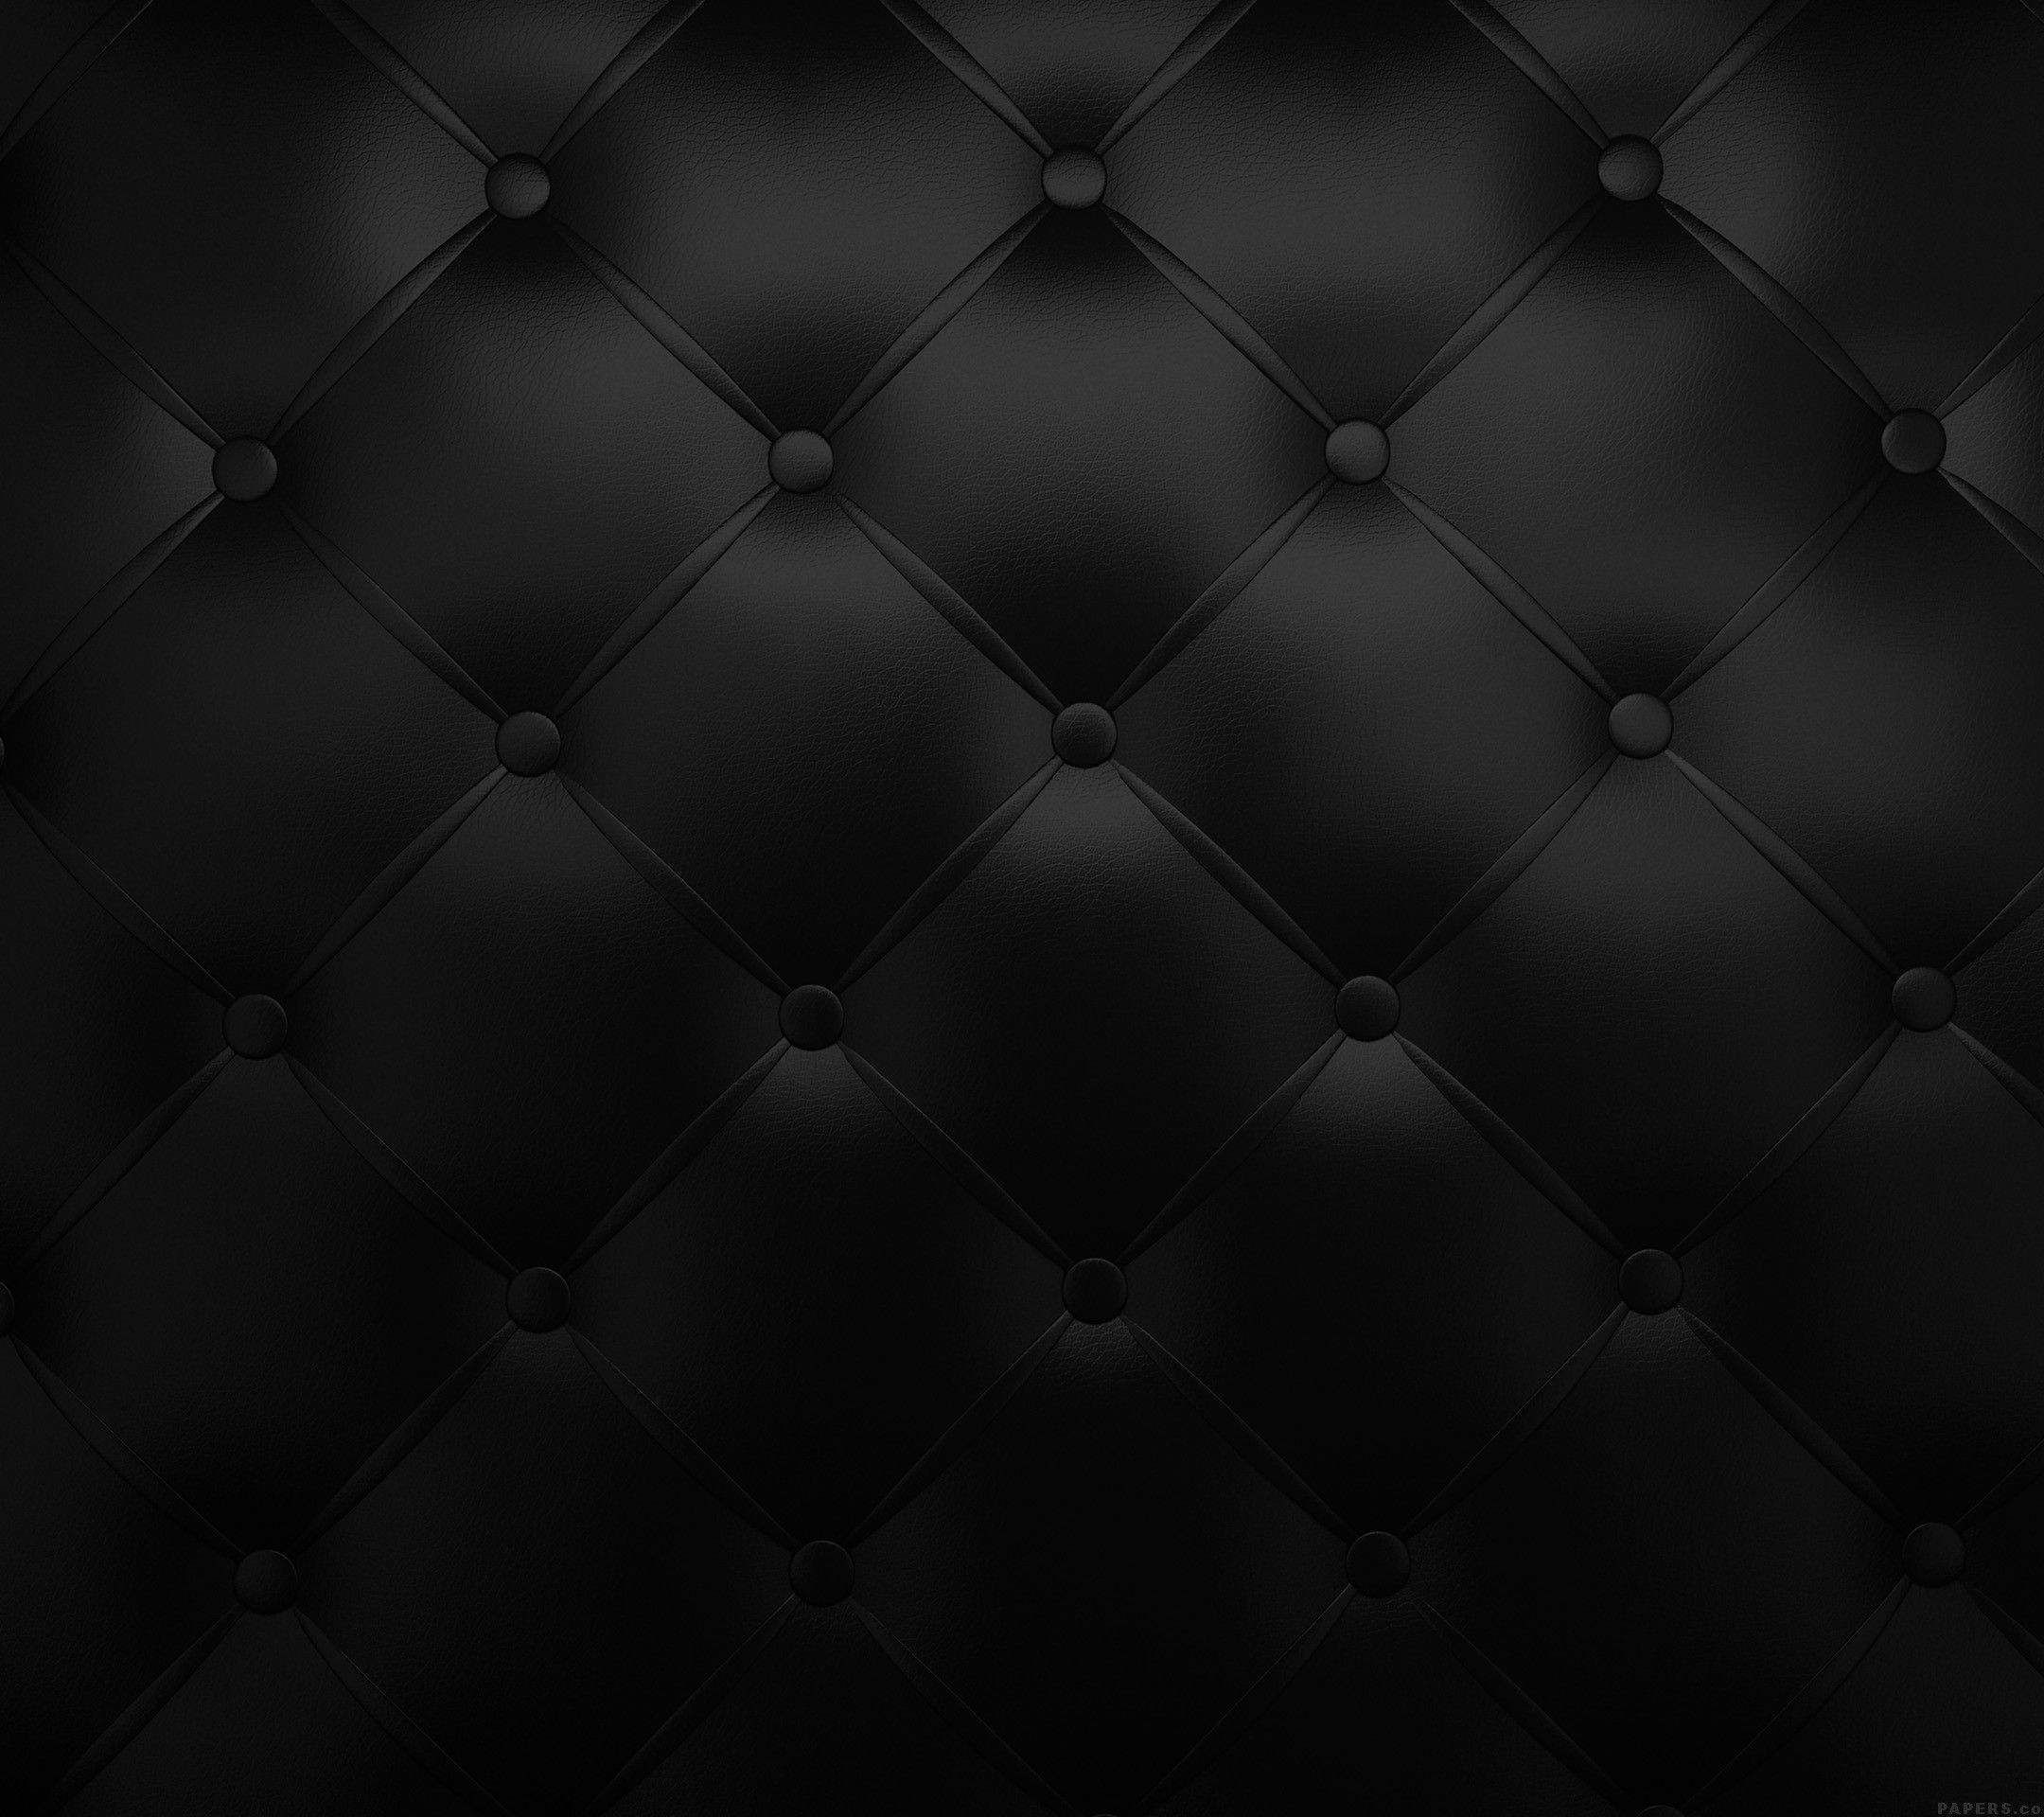 Luxury Black Wallpapers - Top Free Luxury Black Backgrounds -  WallpaperAccess